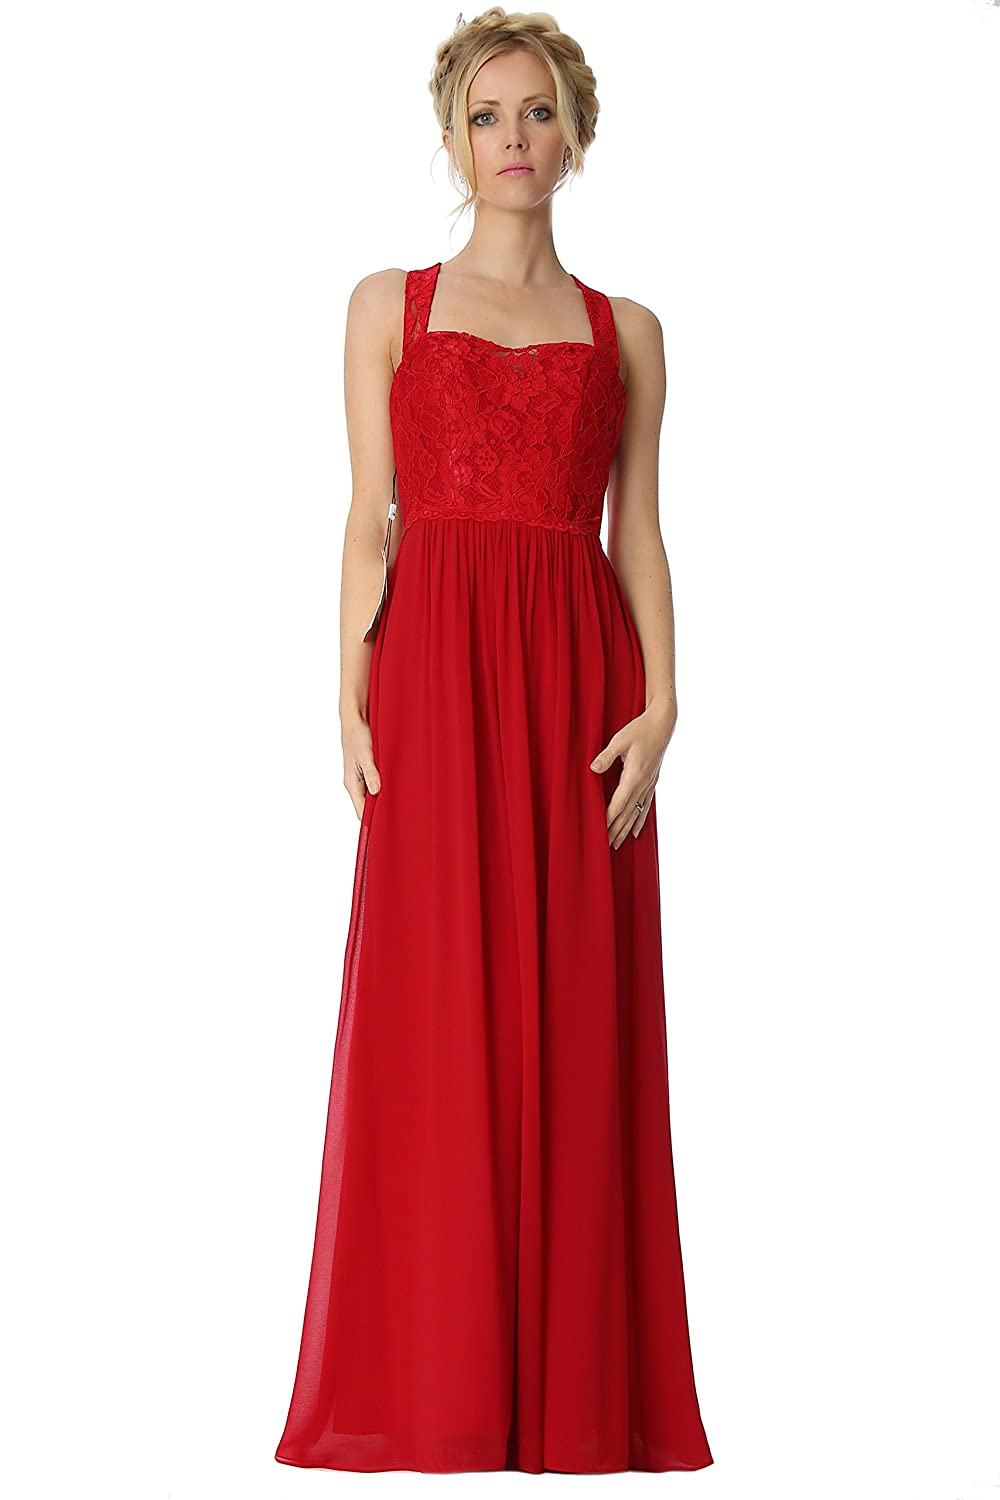 SEXYHER Halter Straps Lace Details Bridesmaids Formal Evening Dress -EDJ1765